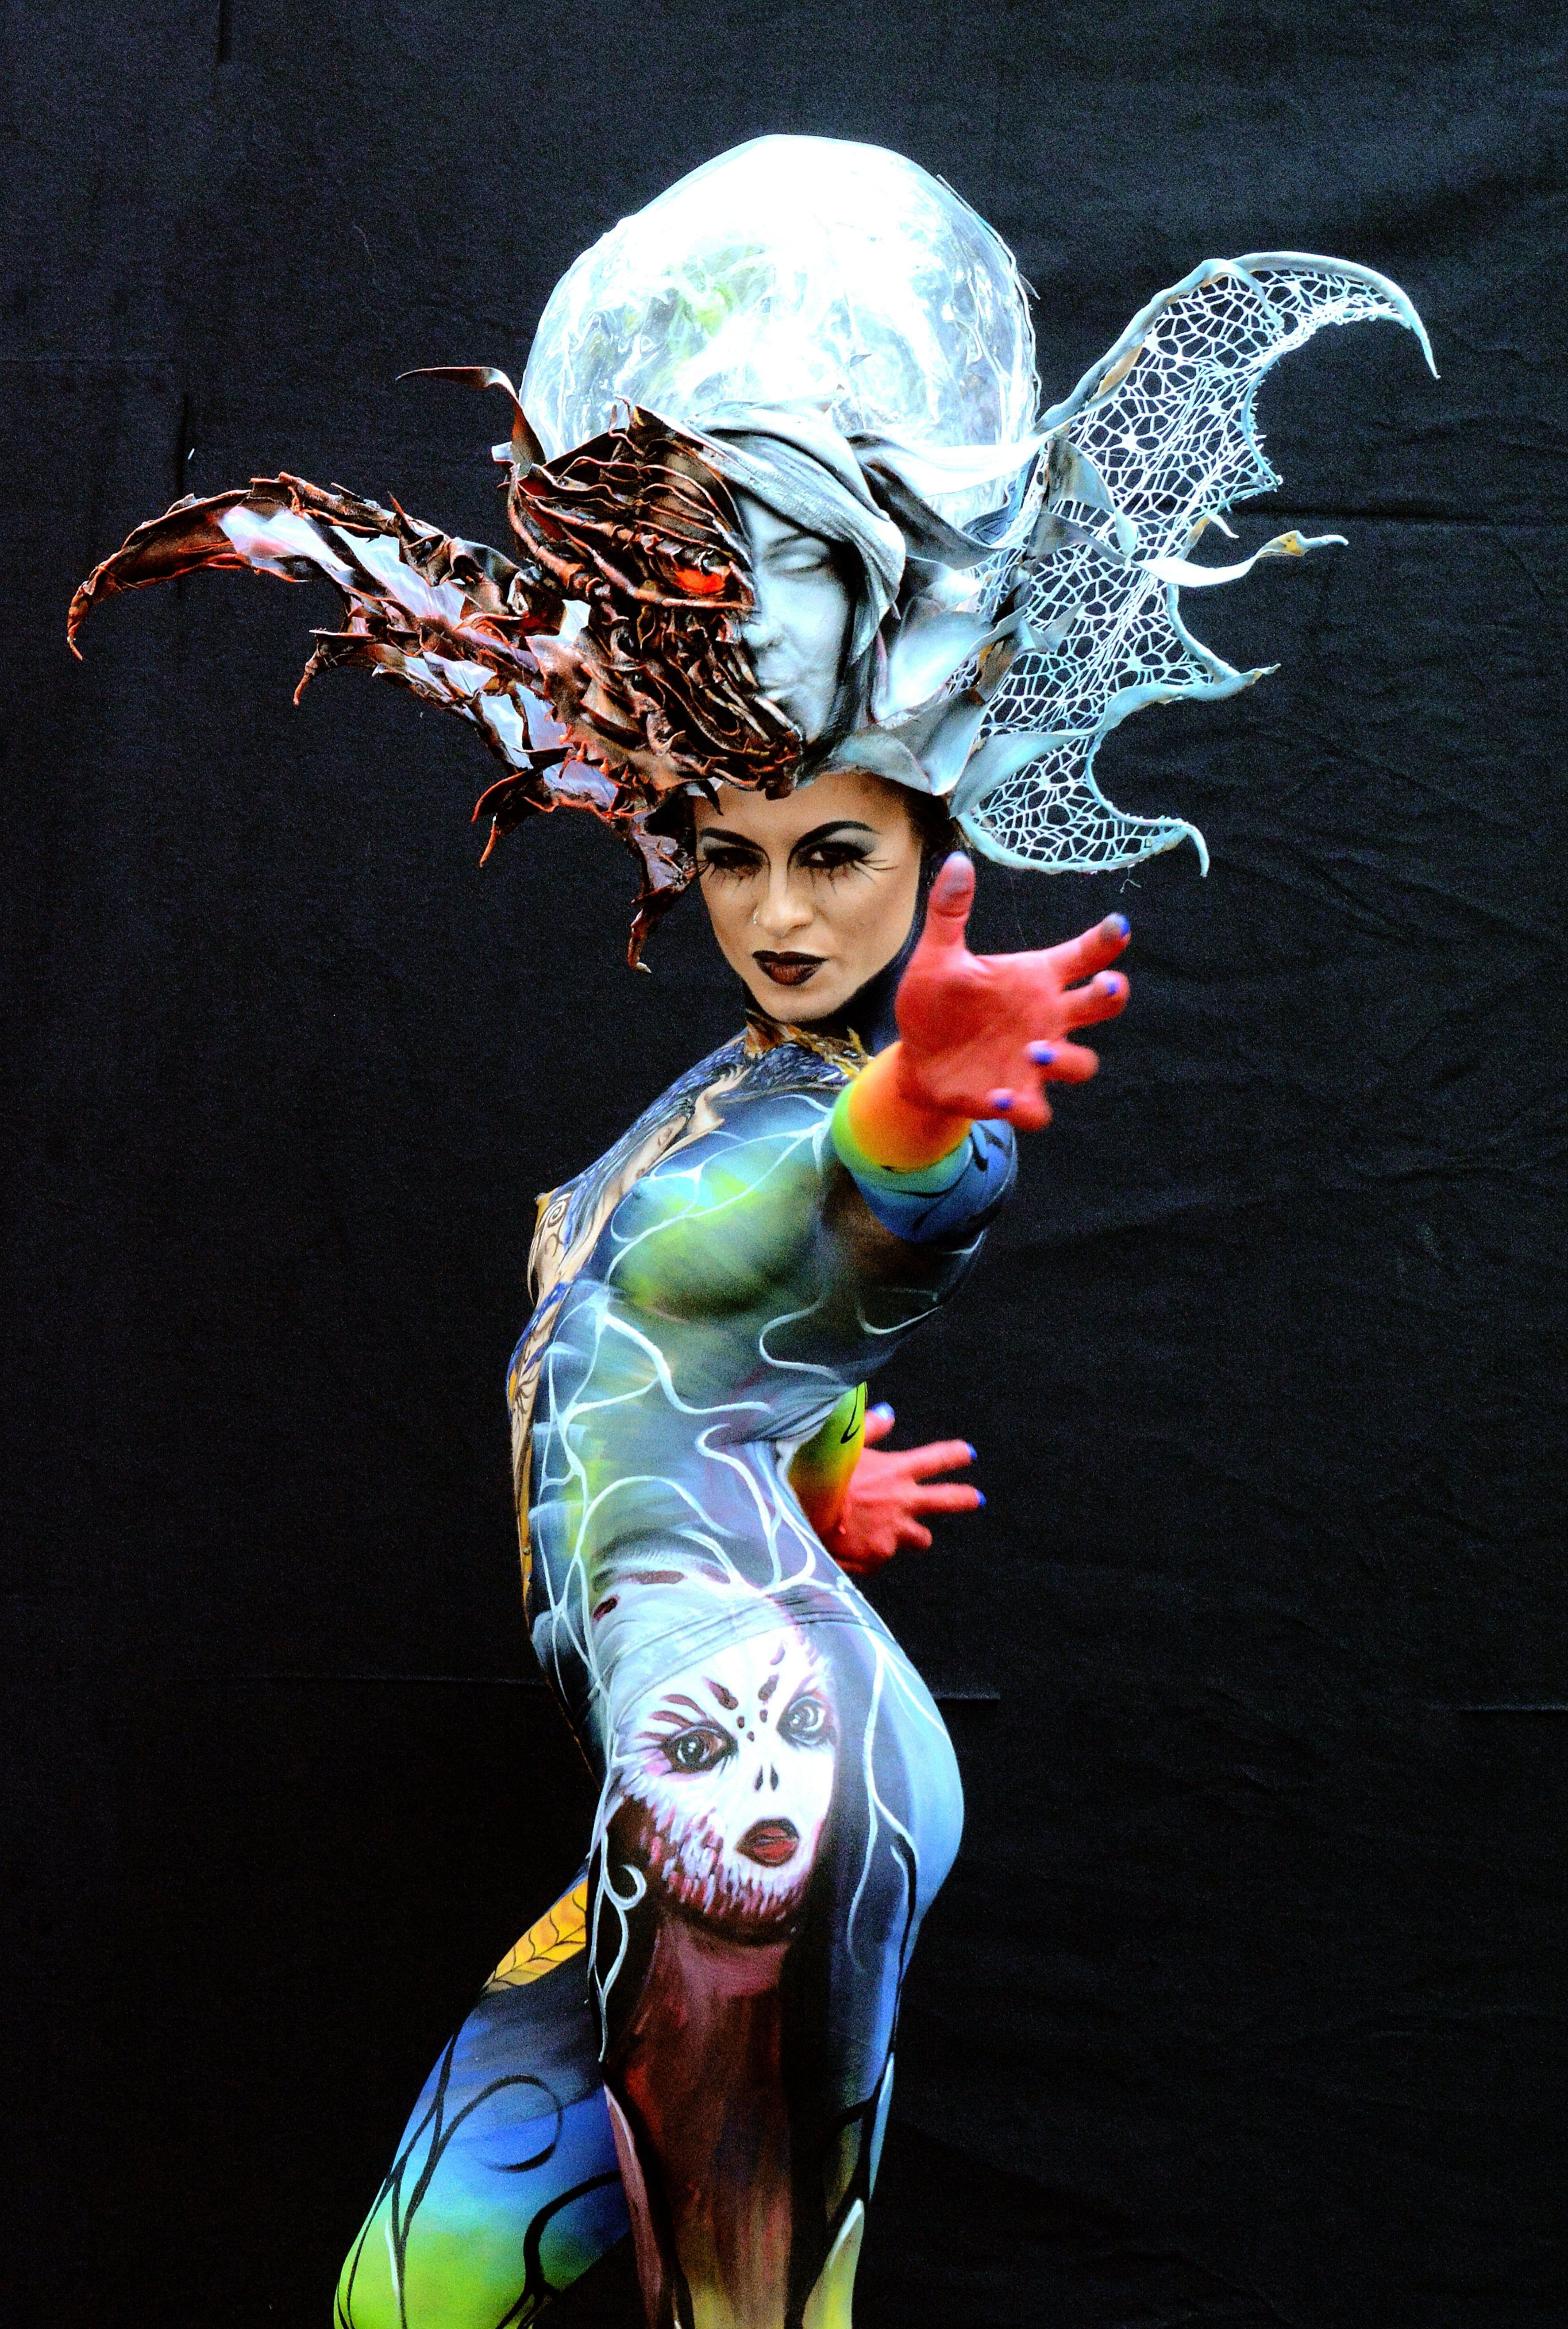 Body Painting Festival In Austria In Pictures Body Painting Festival In Austria In Pictures A In 2020 Body Painting Festival Body Painting Body Art Painting